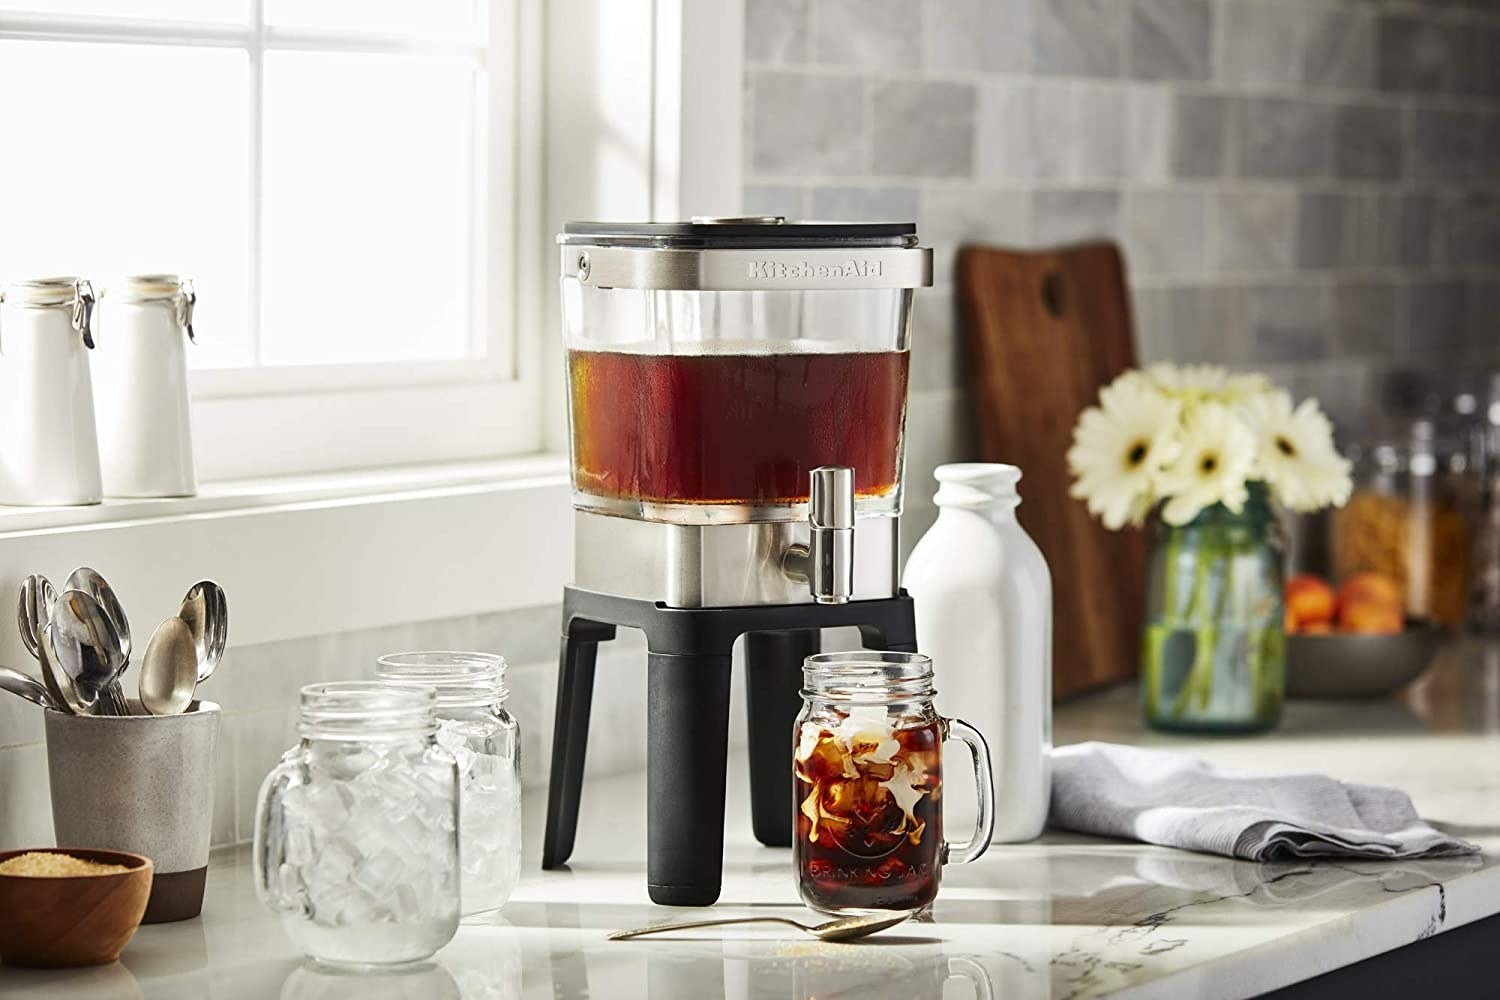 Cold brew maker sitting on kitchen counter